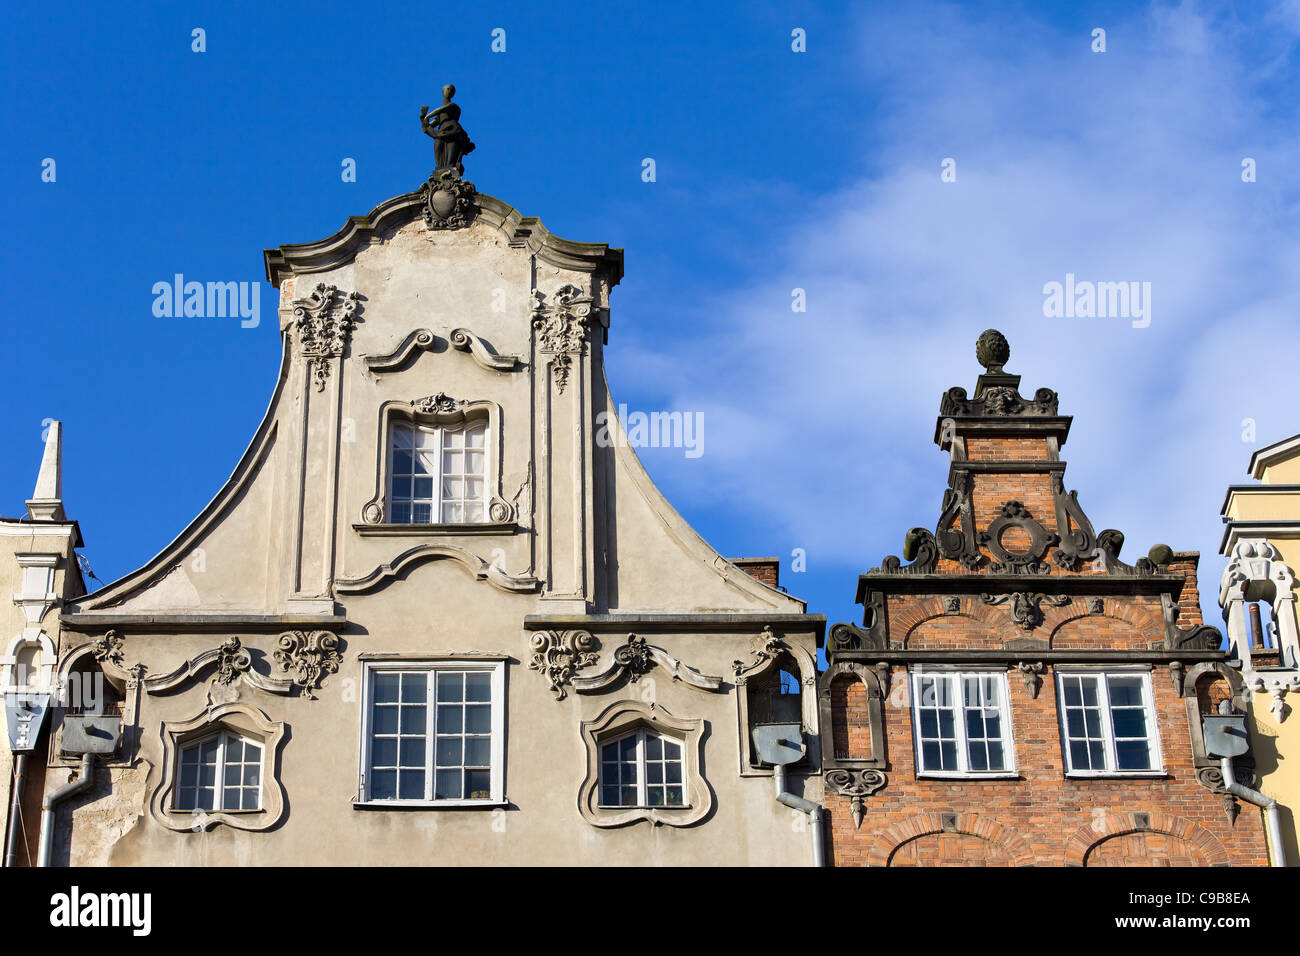 Ornate top of a tenement houses in the Old Town of Gdansk, Poland Stock Photo